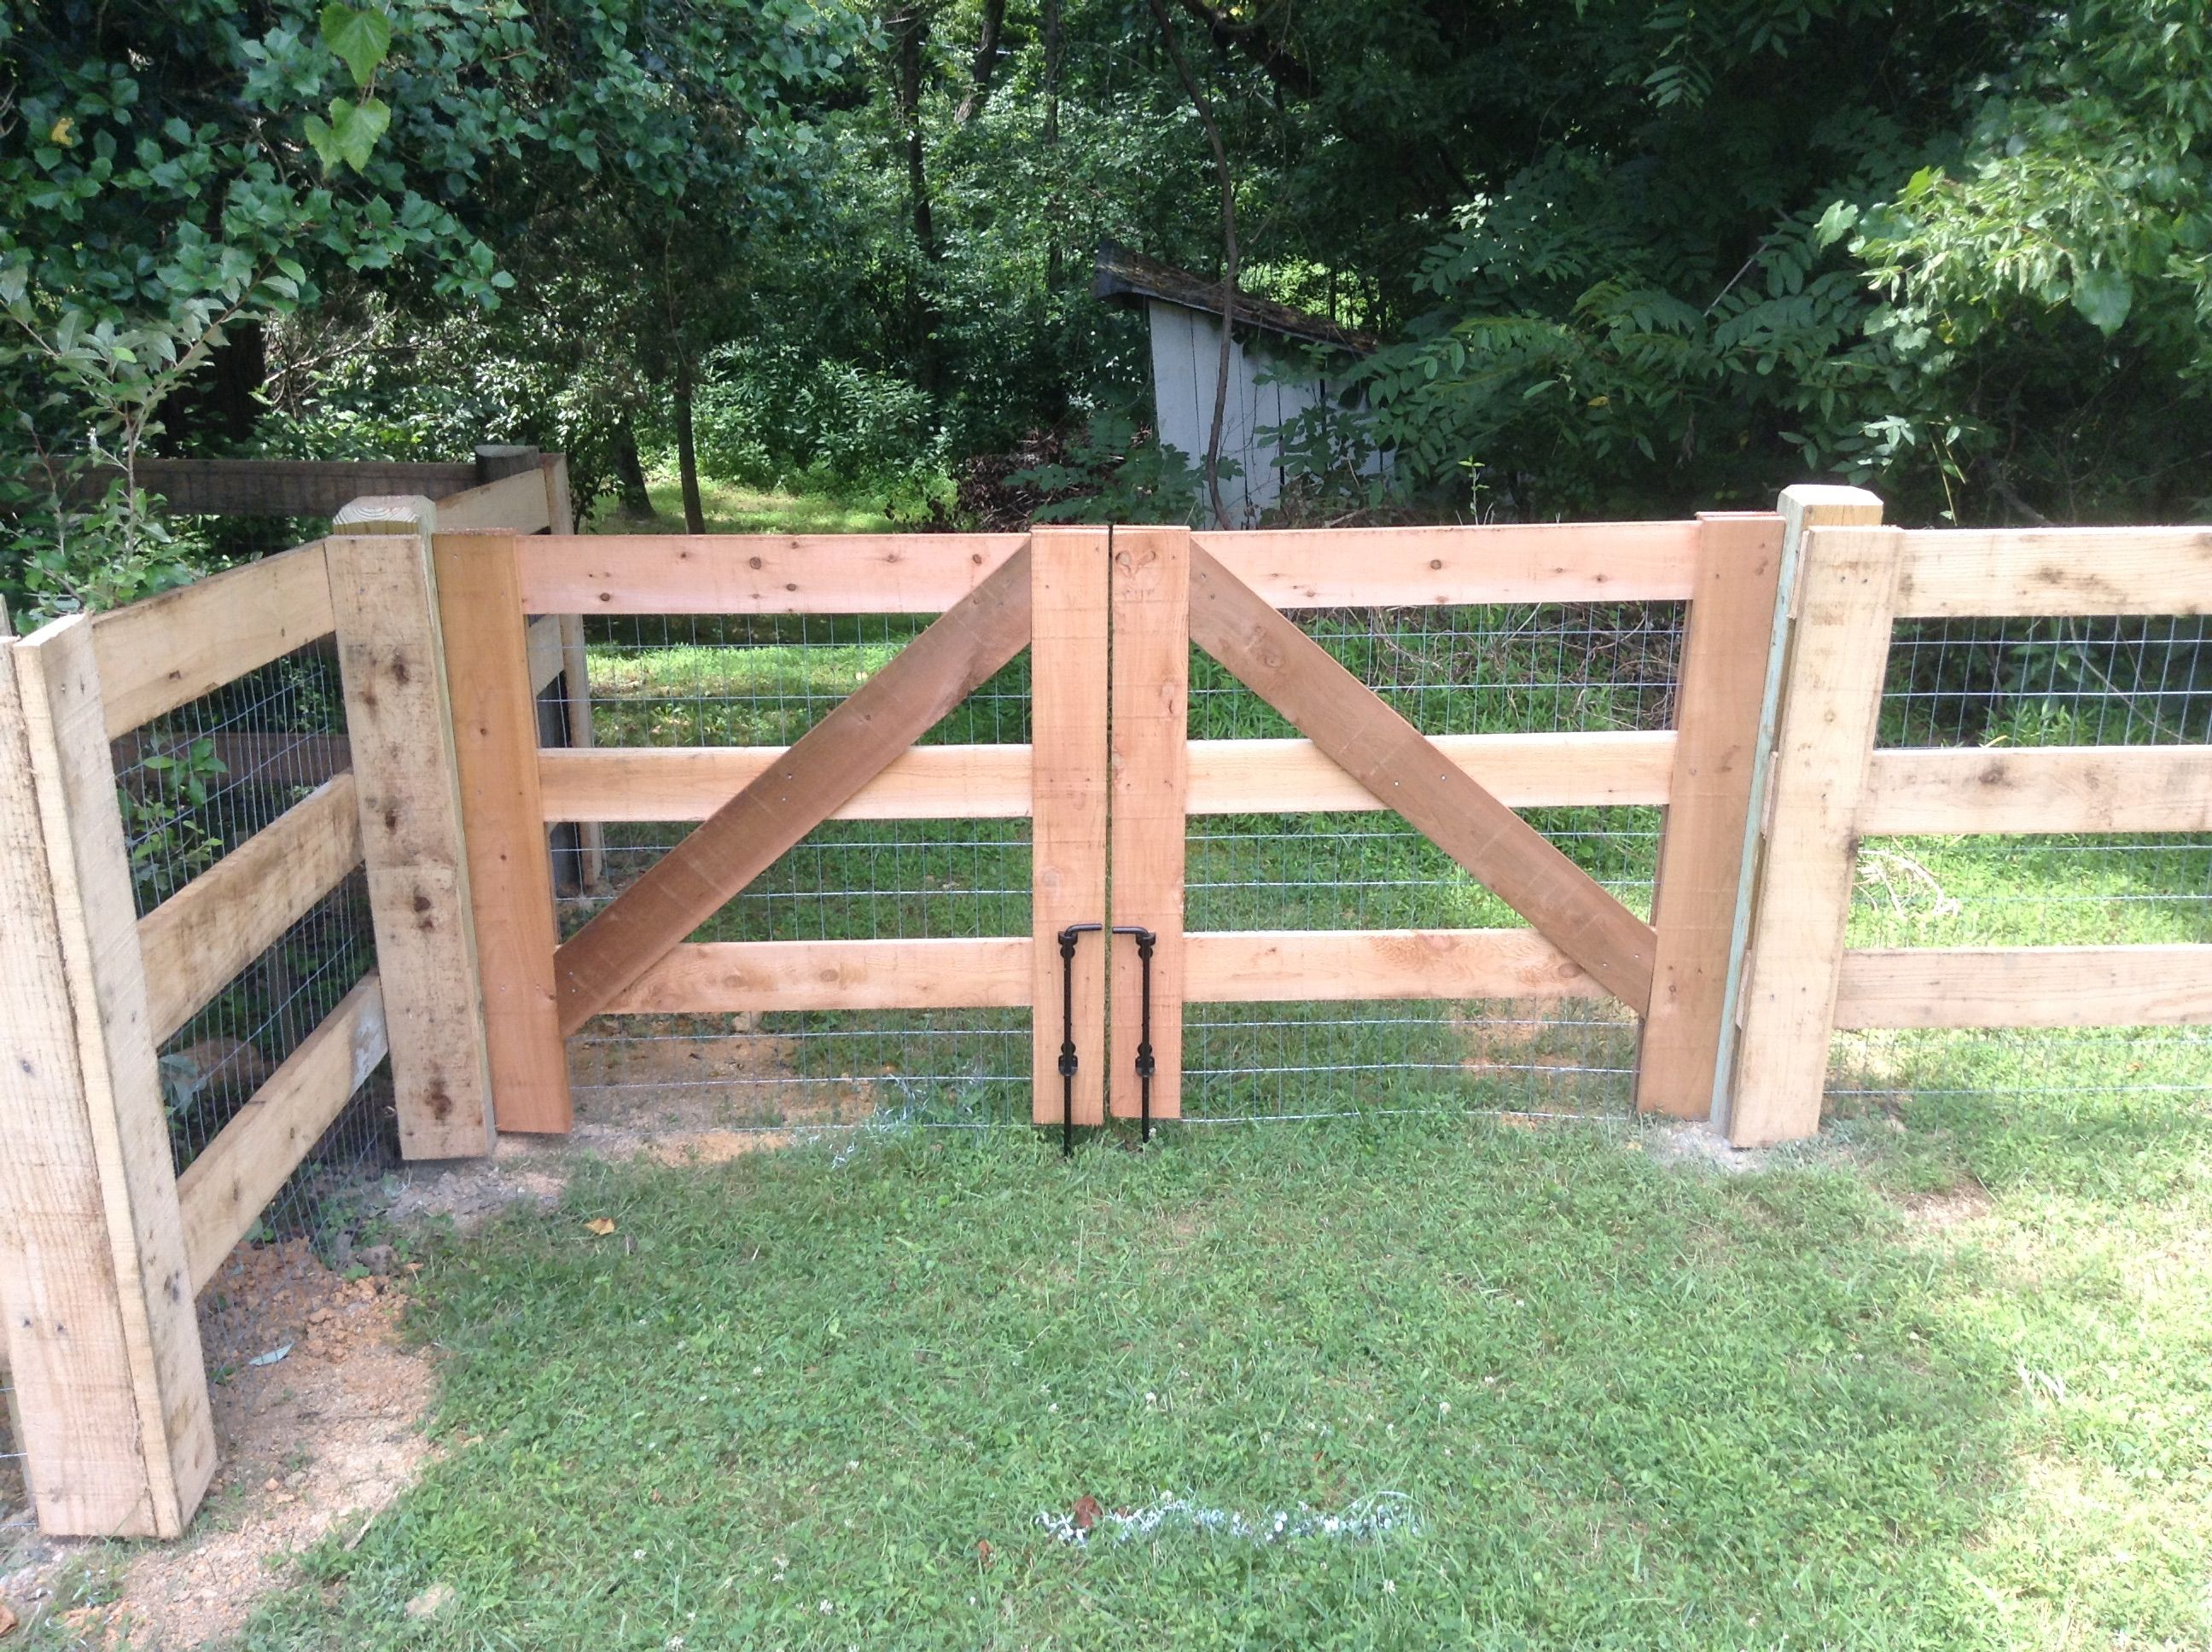 Horse Board Double Gate Paddock Horse Board Pasture Fence Designs Fence Posts Are Made Of Treated Pine Fence Gate Design Wood Fence Design Farm Fence Gate